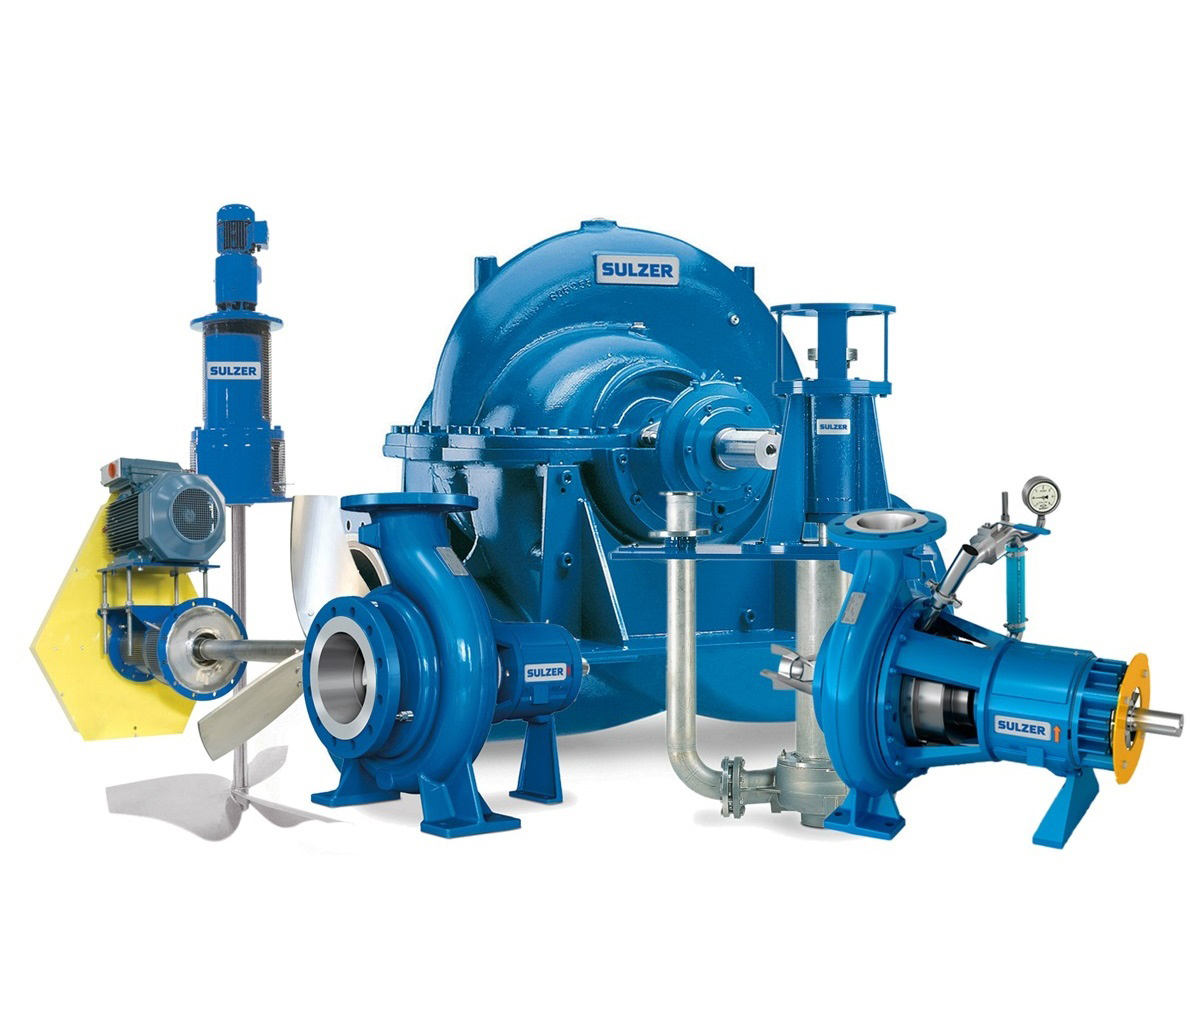 Scanpump ISO5199 Pumps